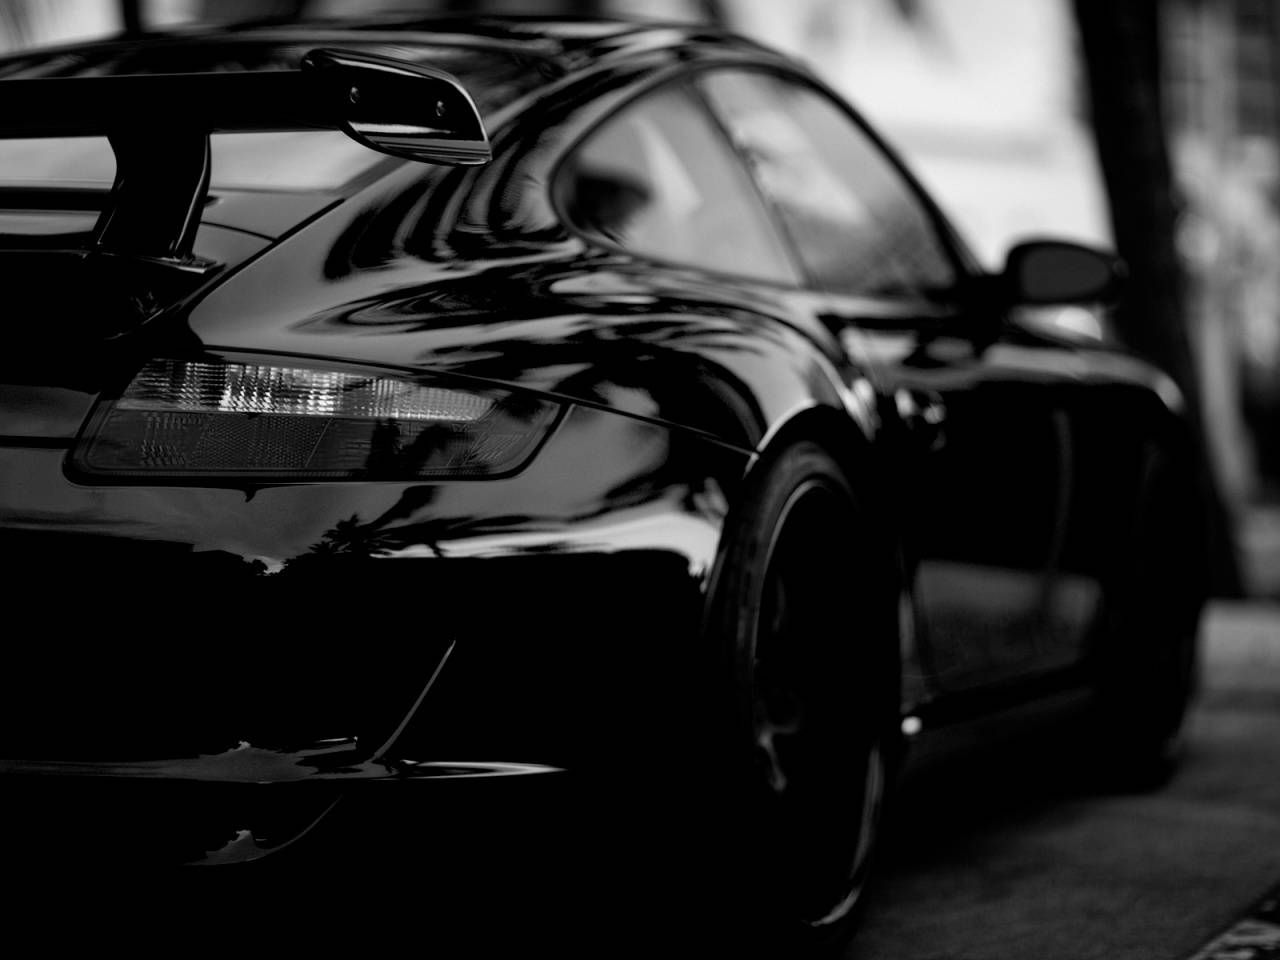 2013 Porsche Black Tuned Wallpaper With Images Porsche Iphone